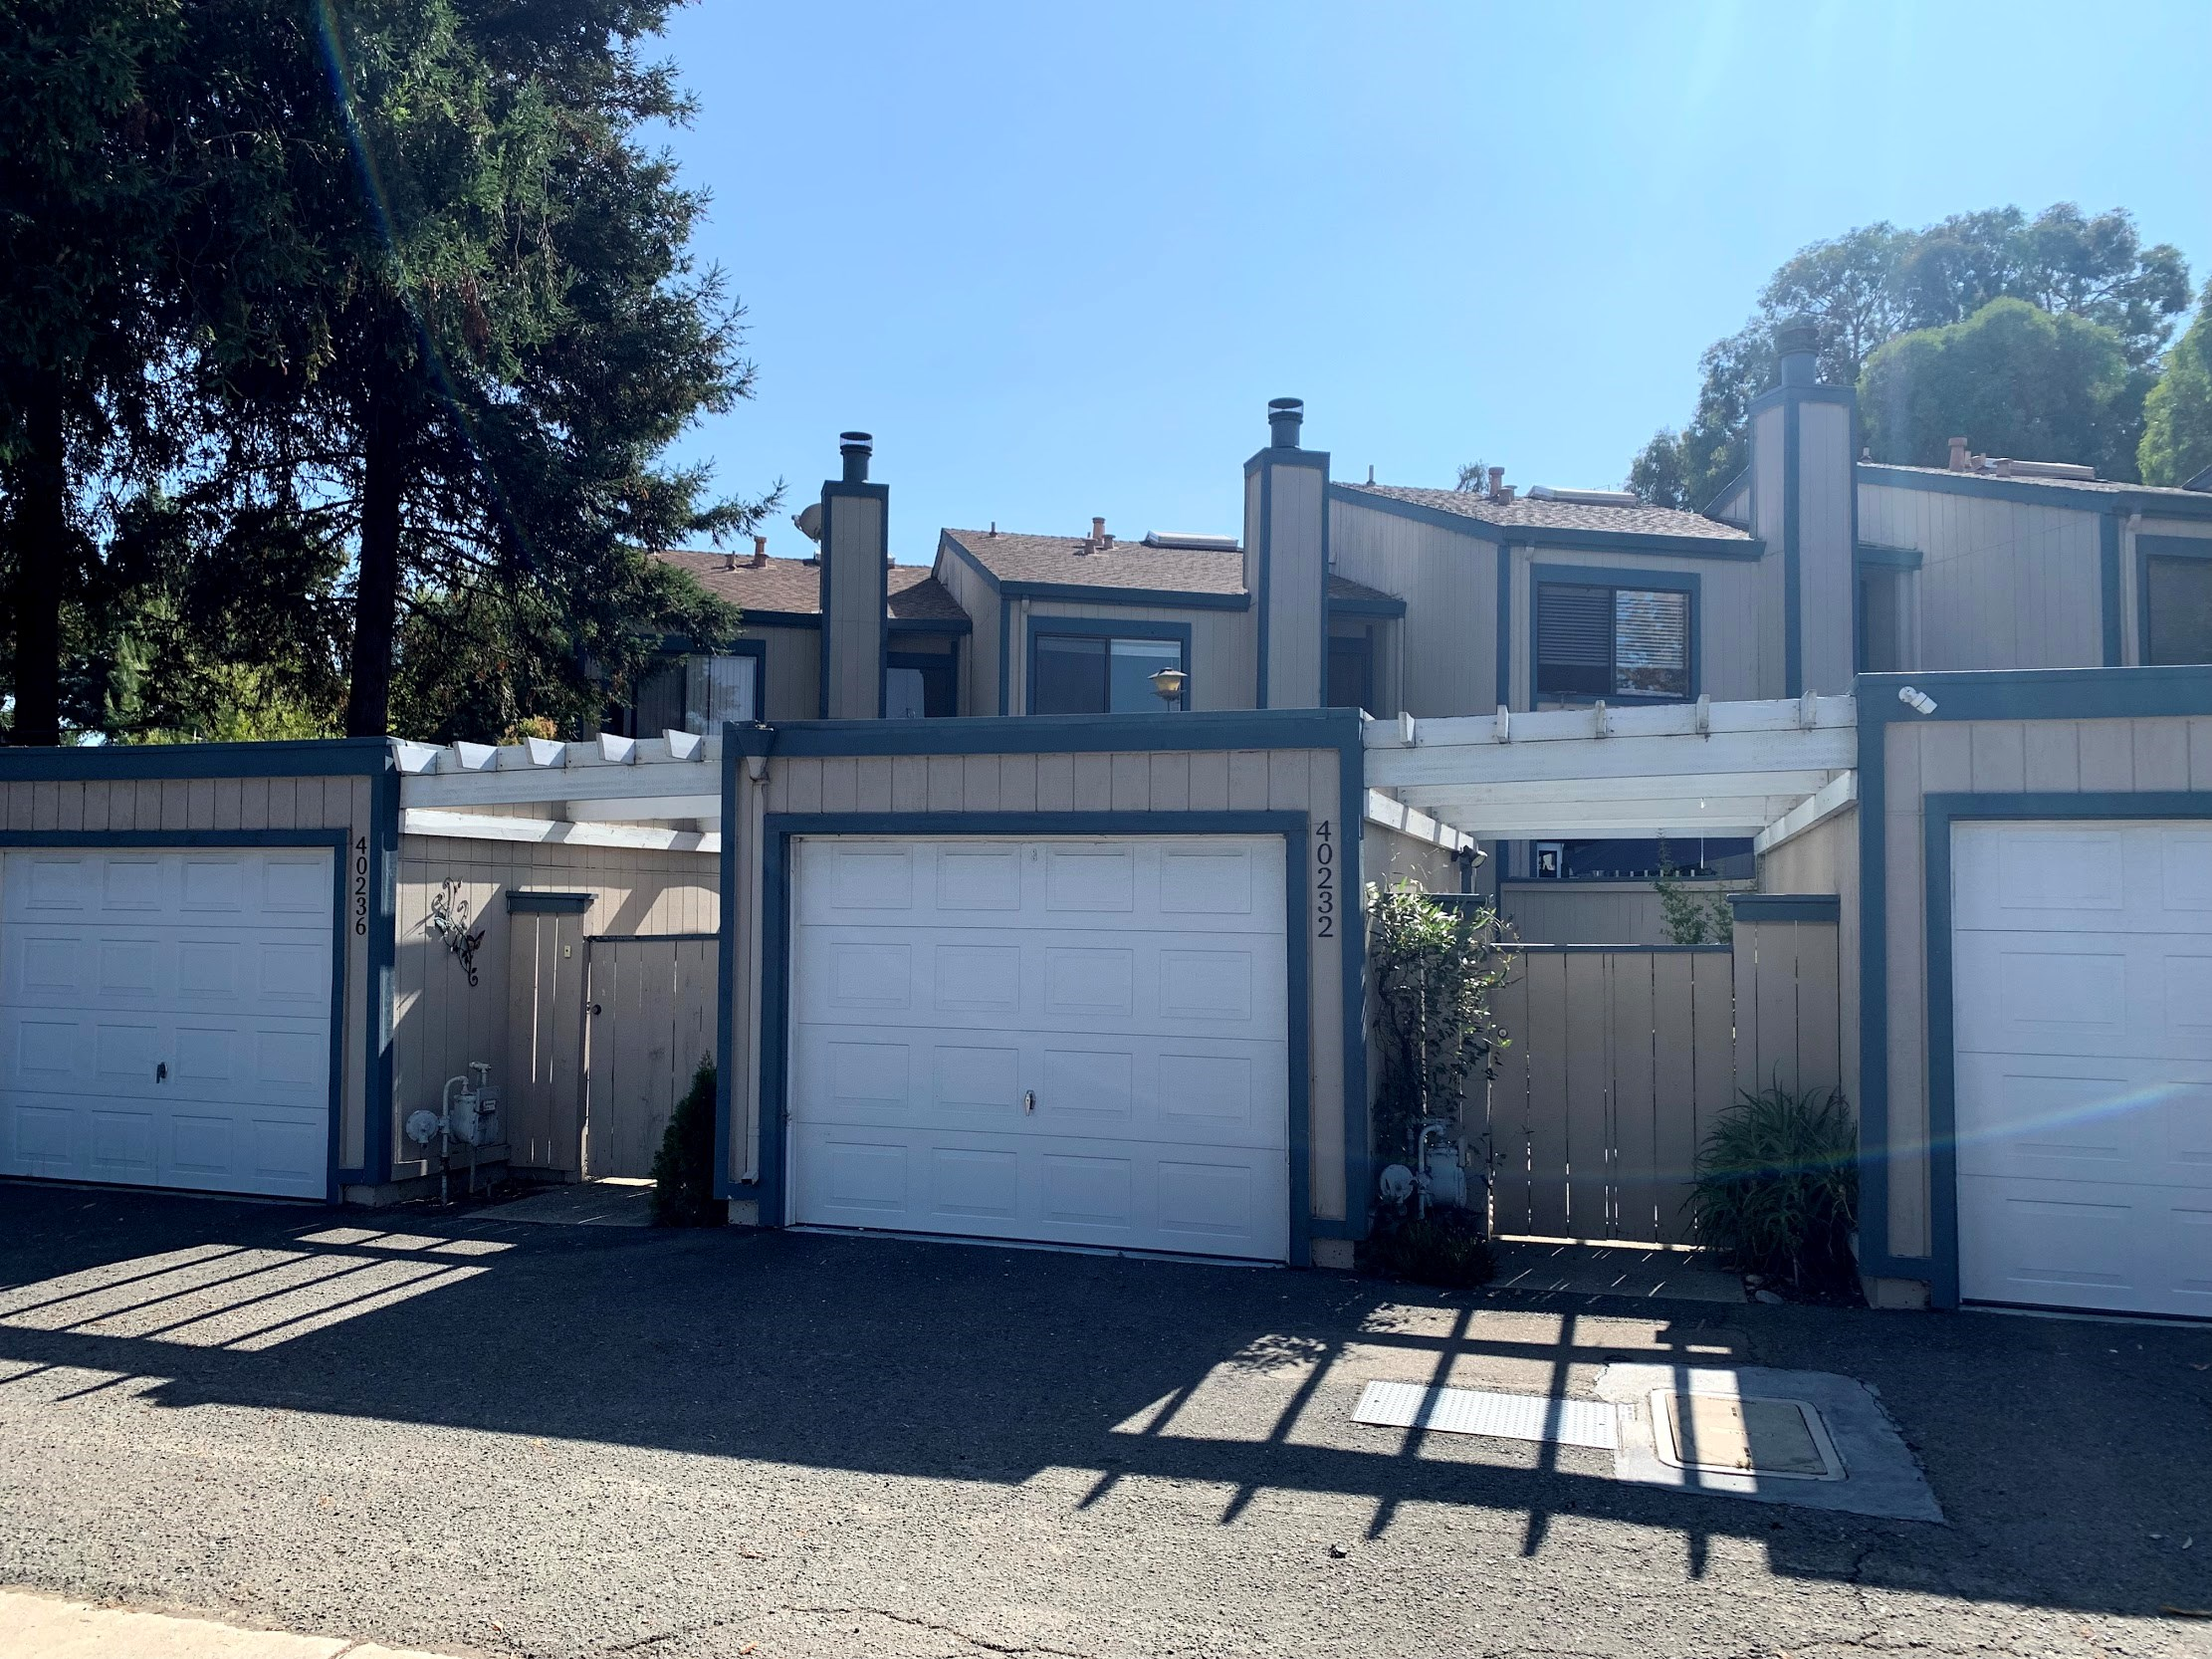 Park/Lake/Water Park Front 2BR 2B Beautiful Newly Renovated Condo With  Attached Garage | 2 BHK Condo in Fremont, CA | 1247981 - Sulekha Rentals